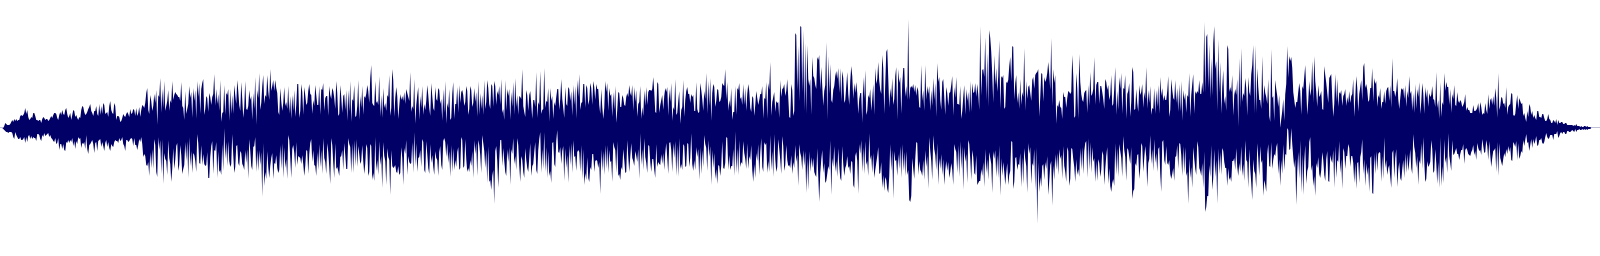 waveform of track #123947